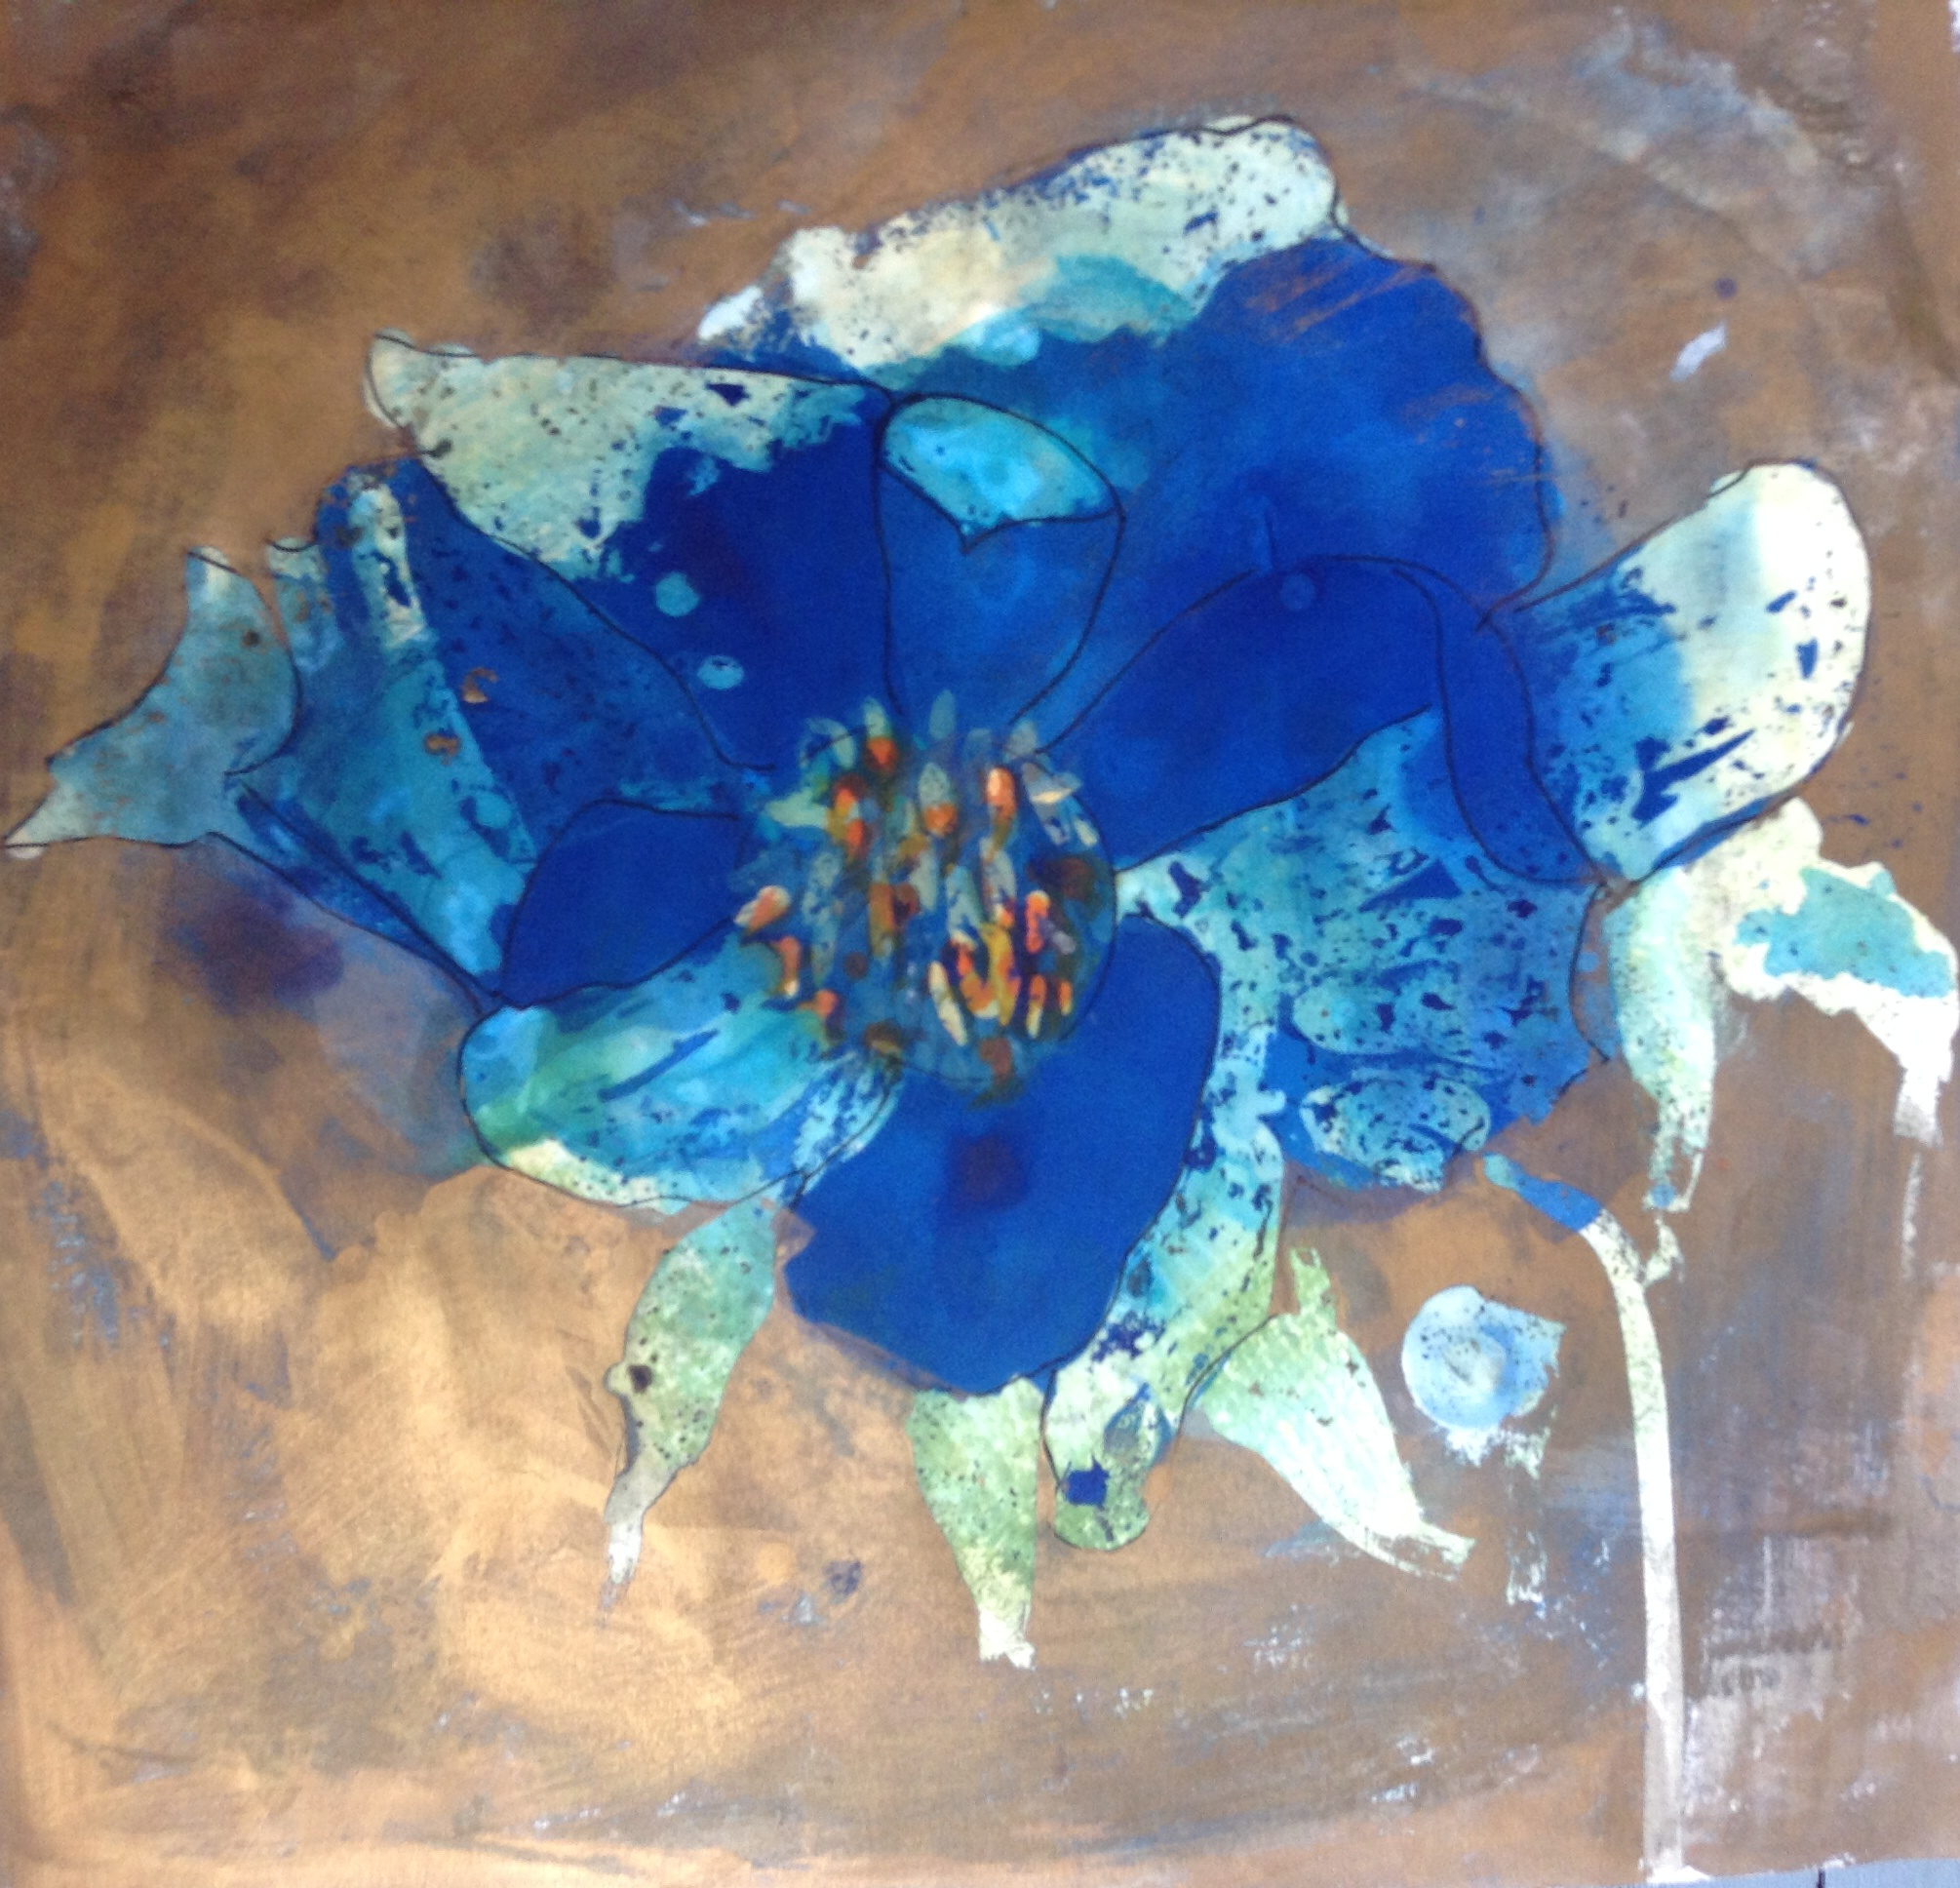 Blue Himalayan Poppy, acrylic and wax resist on paper, 2014